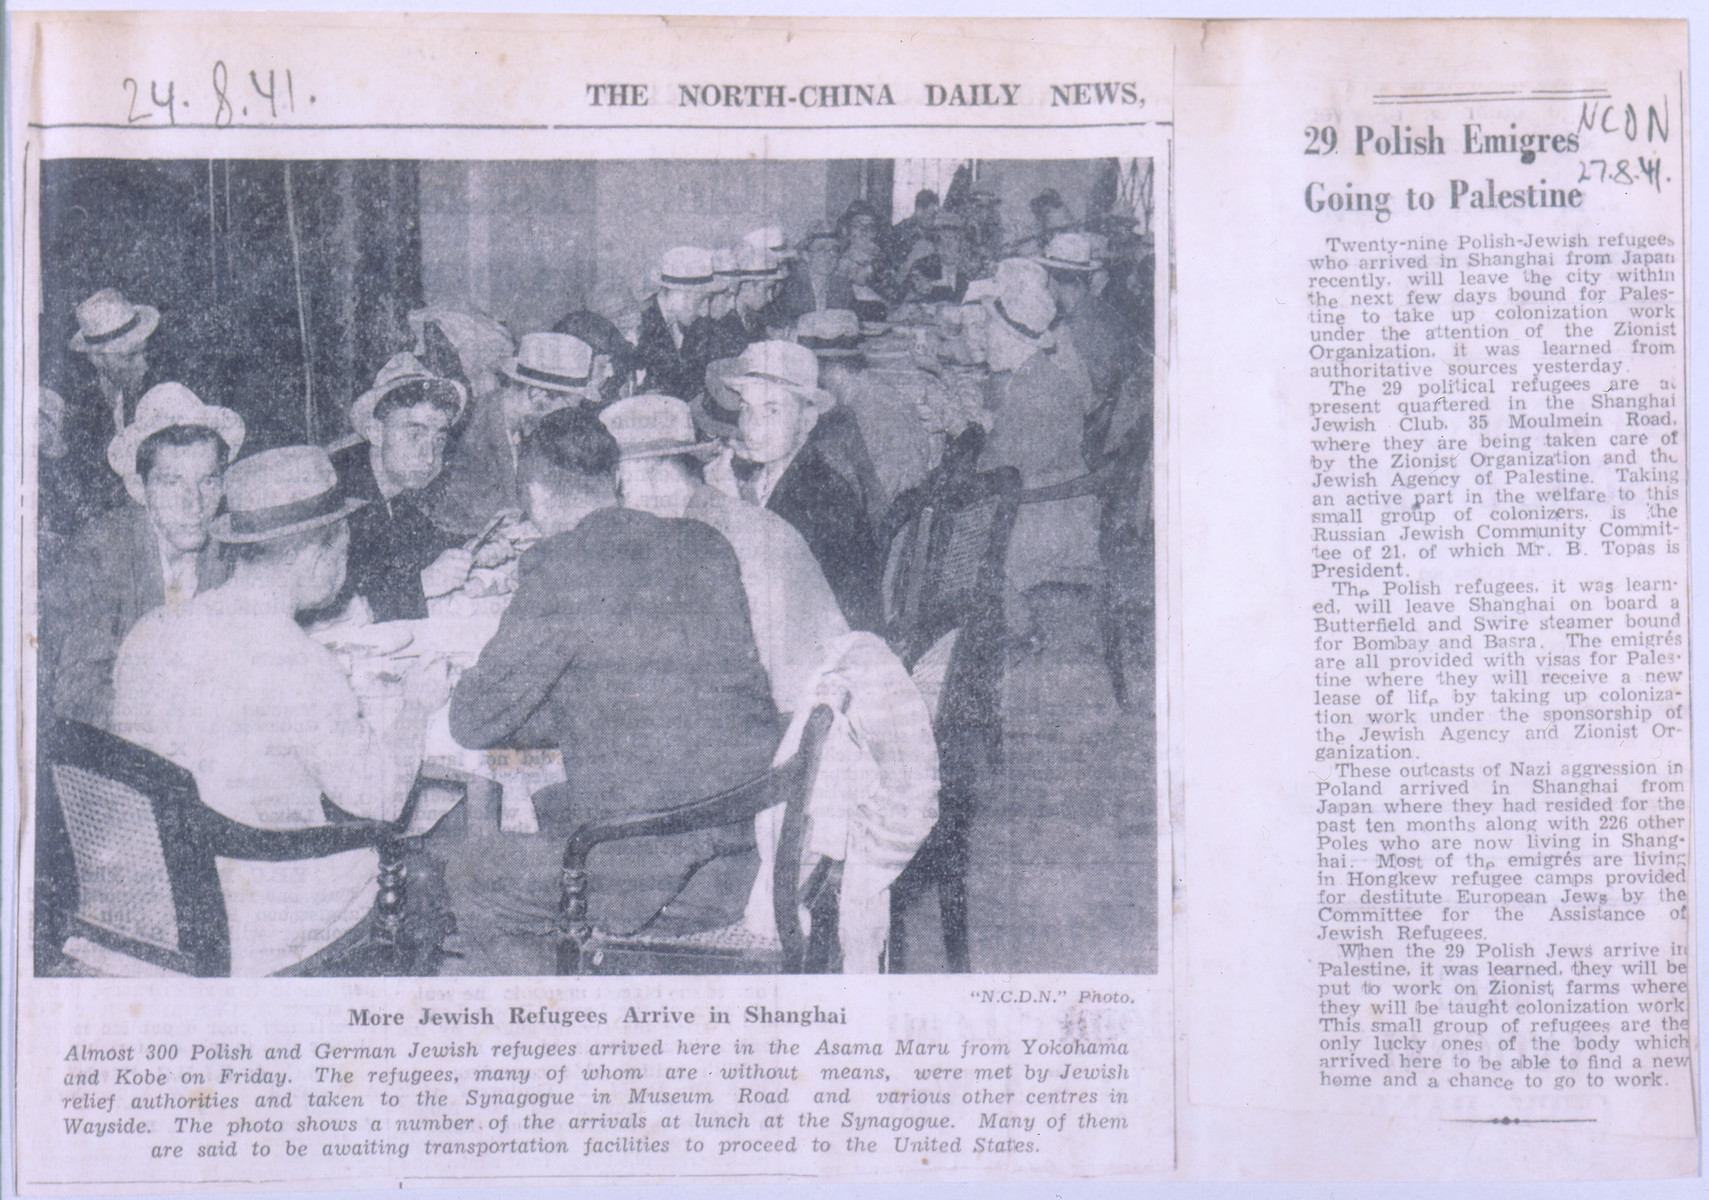 A photo from the North-China Daily News showing the arrival of Jewish refugees in Shanghai.